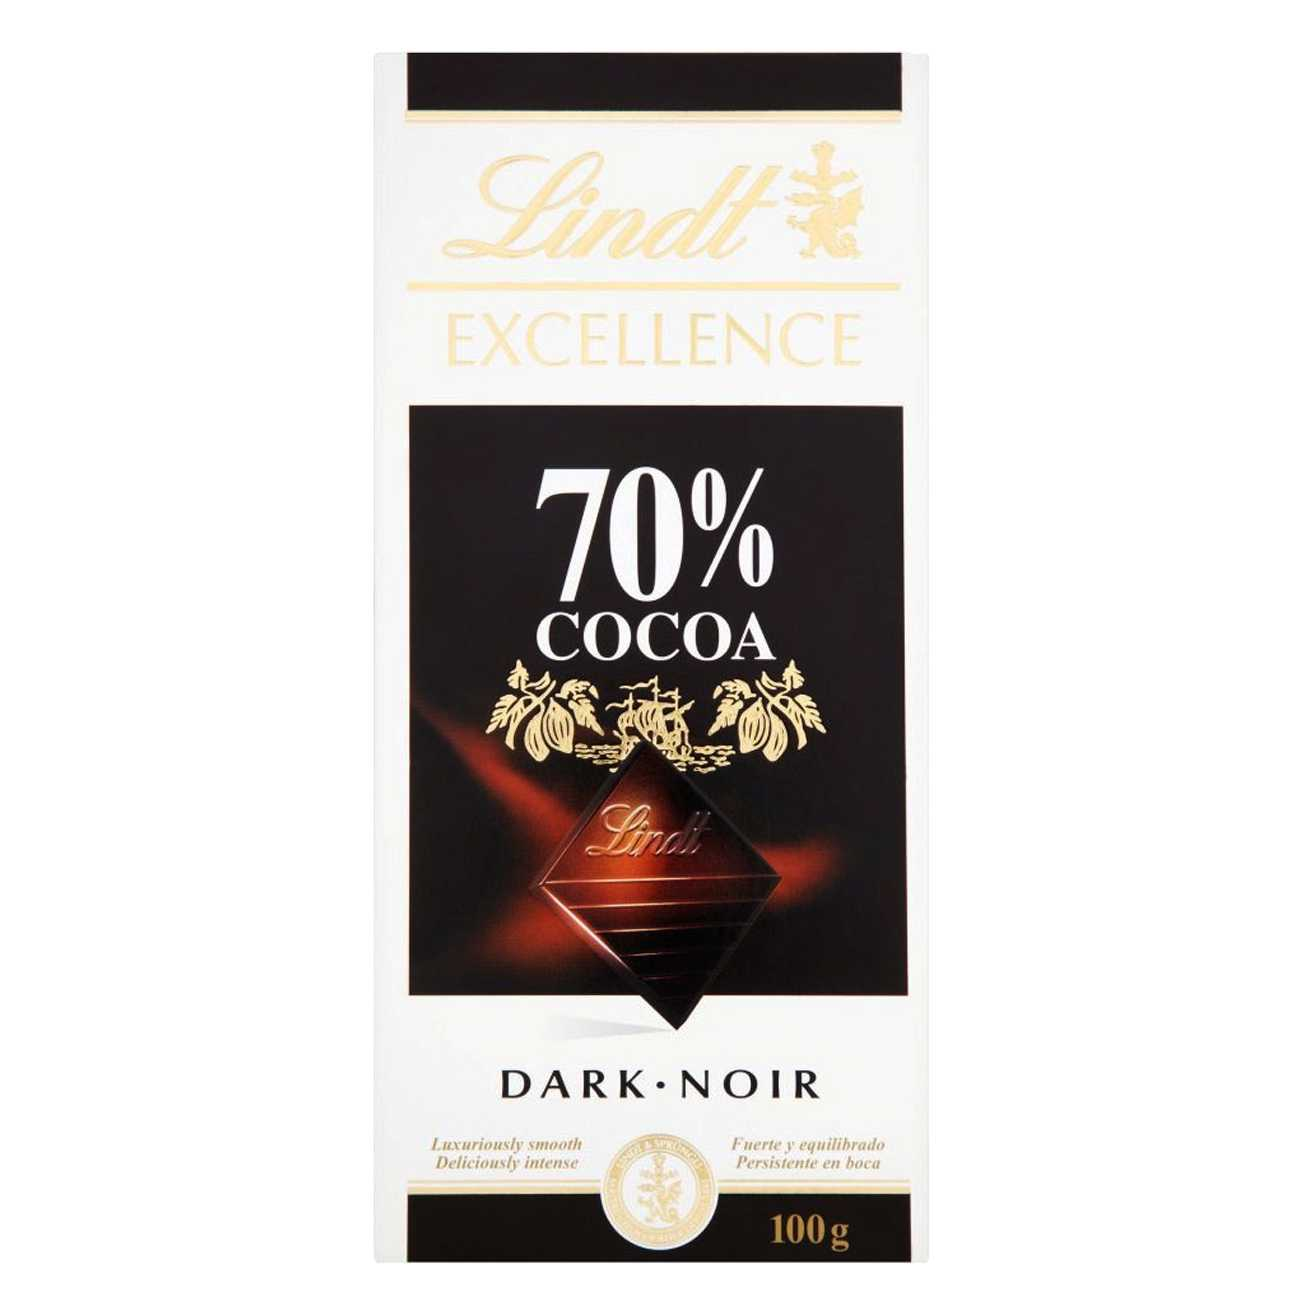 EXCELLENCE EXTRA DARK 70% COCOA 200 G